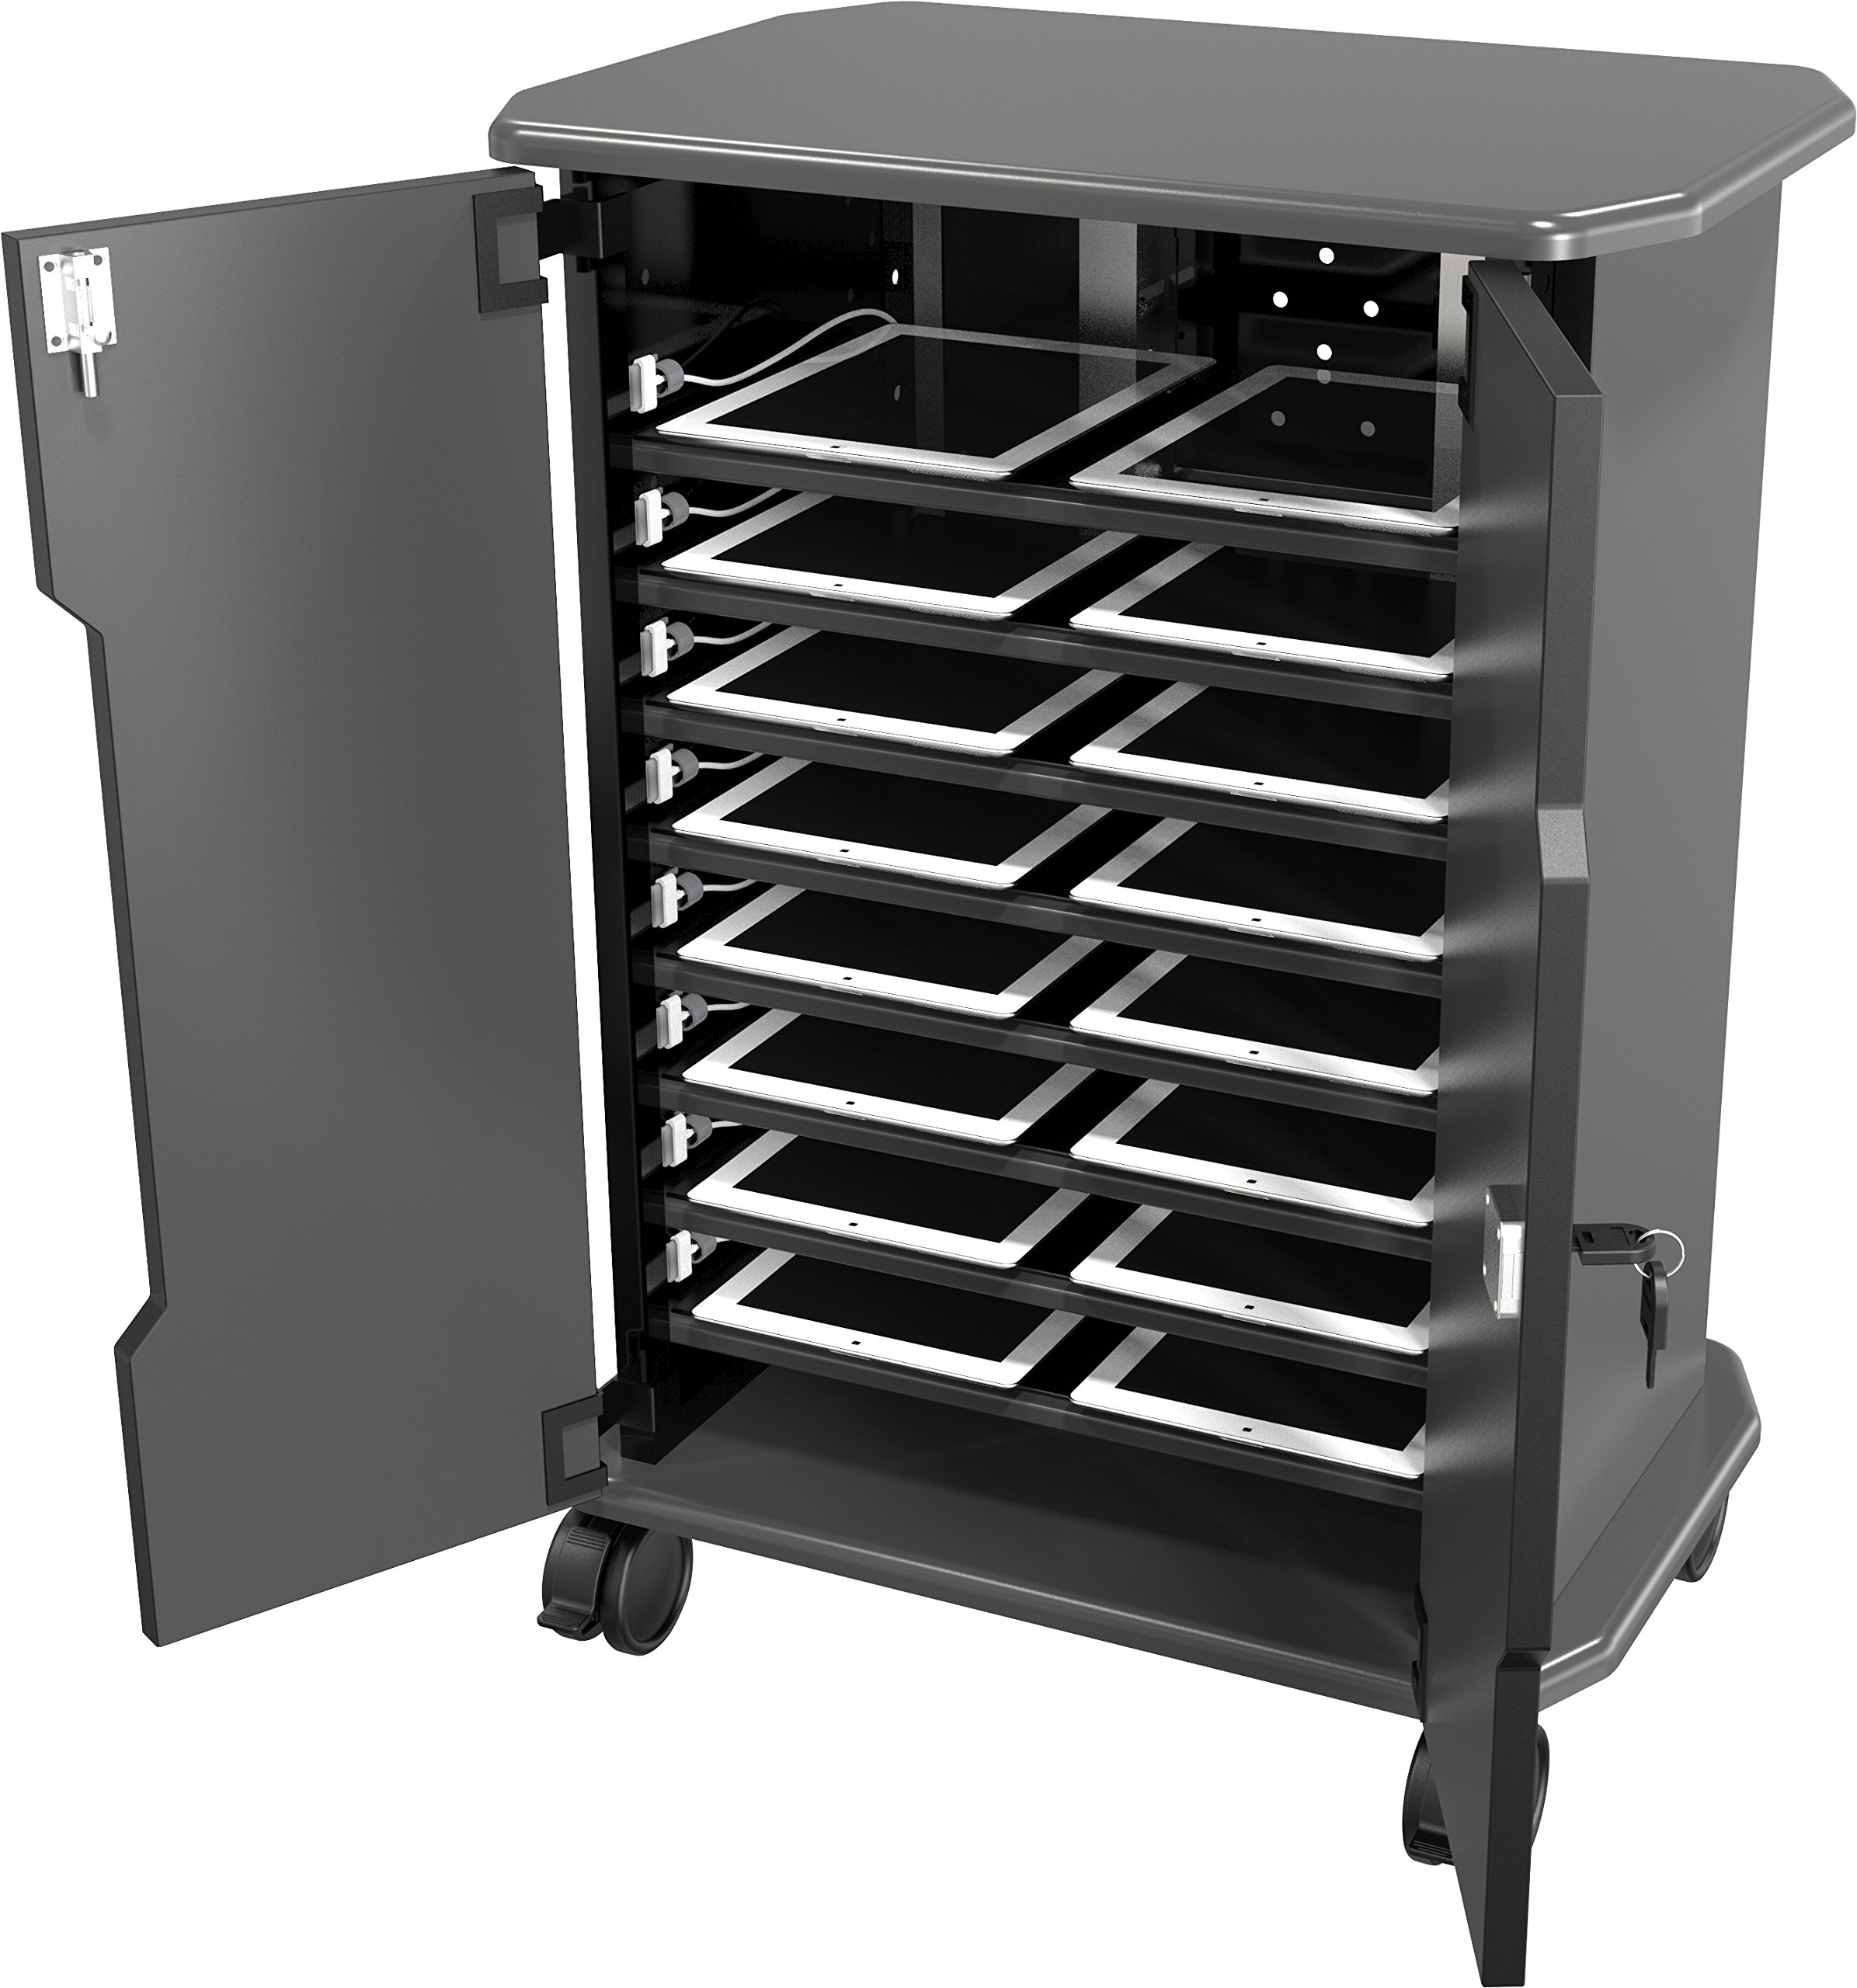 Balt Tablet Charging Cart, 27689, 16 Compartments, 30.75''H x 22.5''W x 15.75''D by Balt